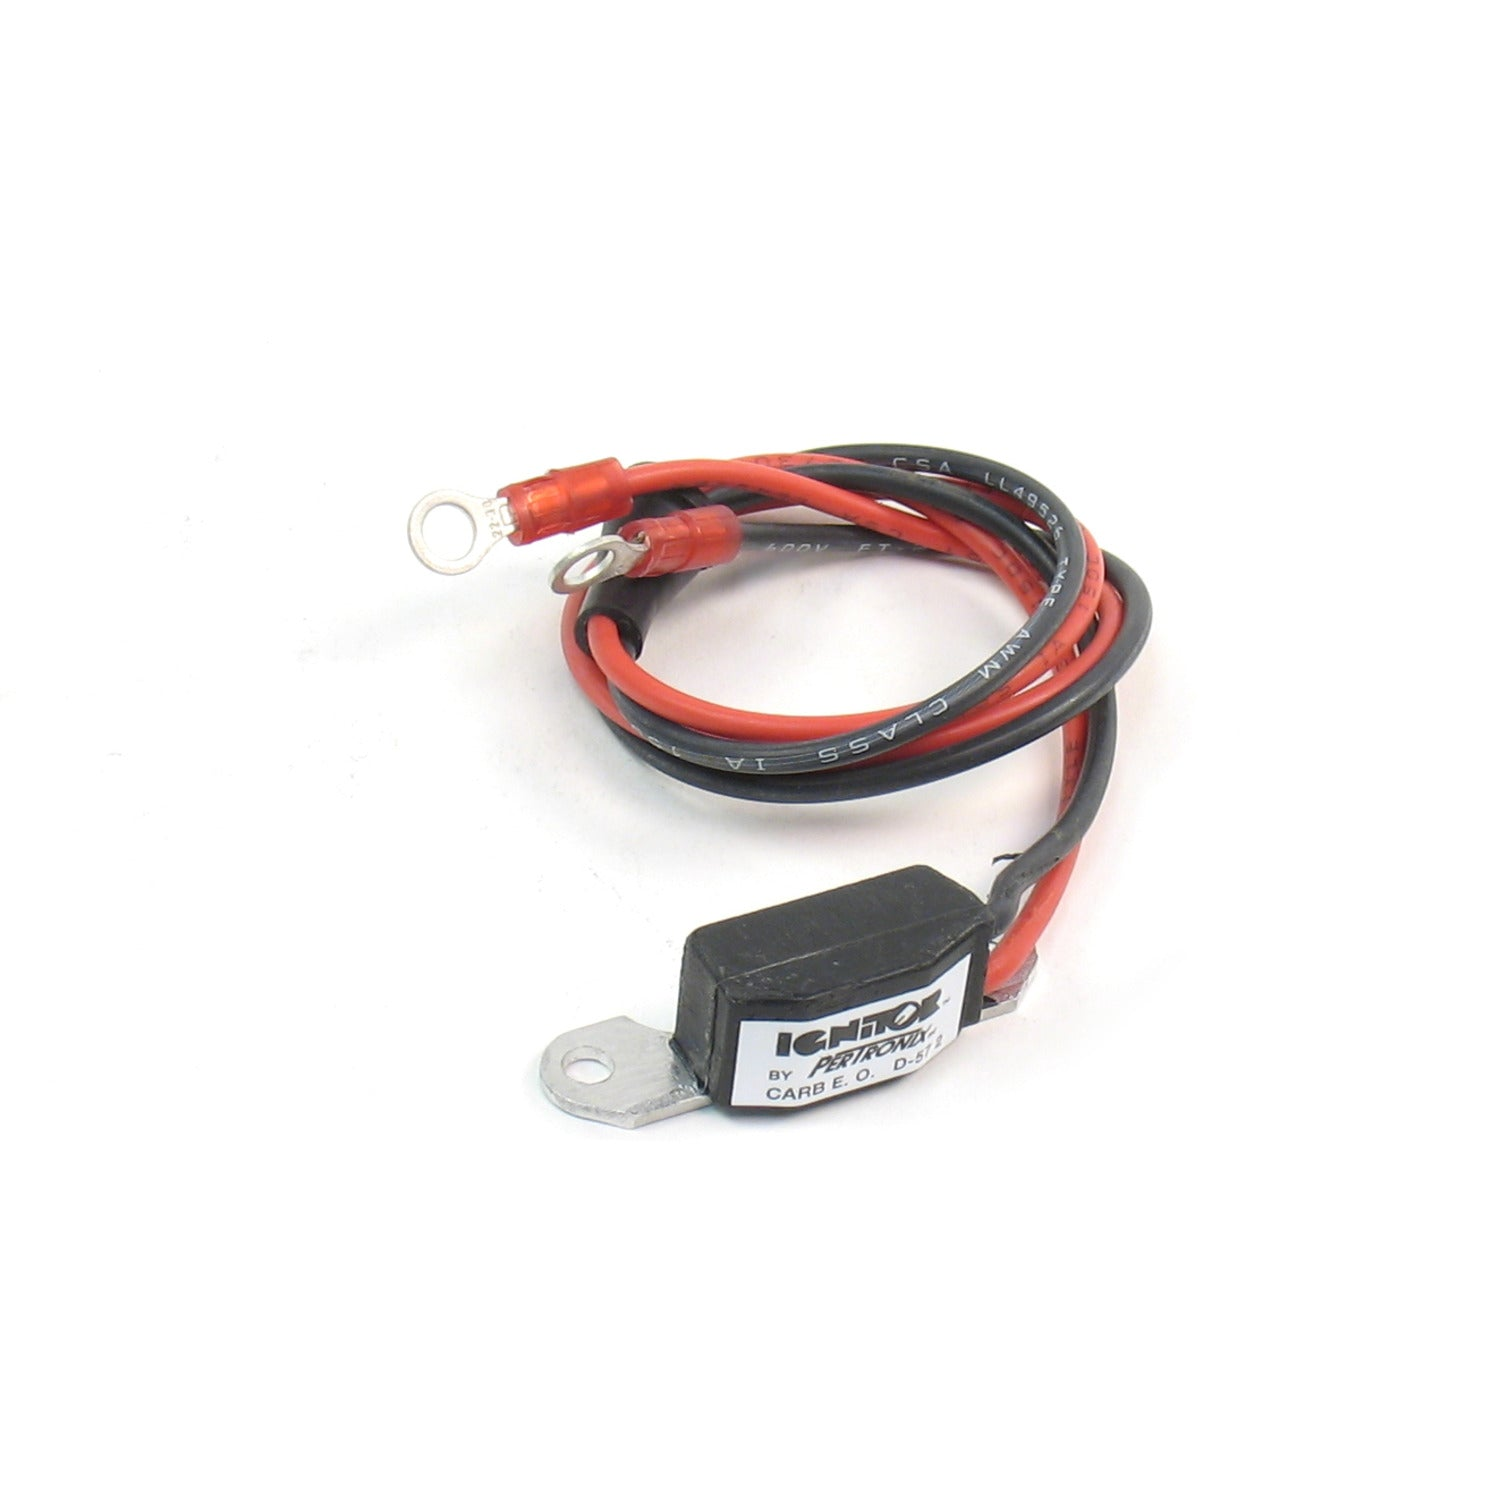 PerTronix D500716 Module (replacement) Ignitor for PerTronix Flame-Thrower Ford Cast Distributor